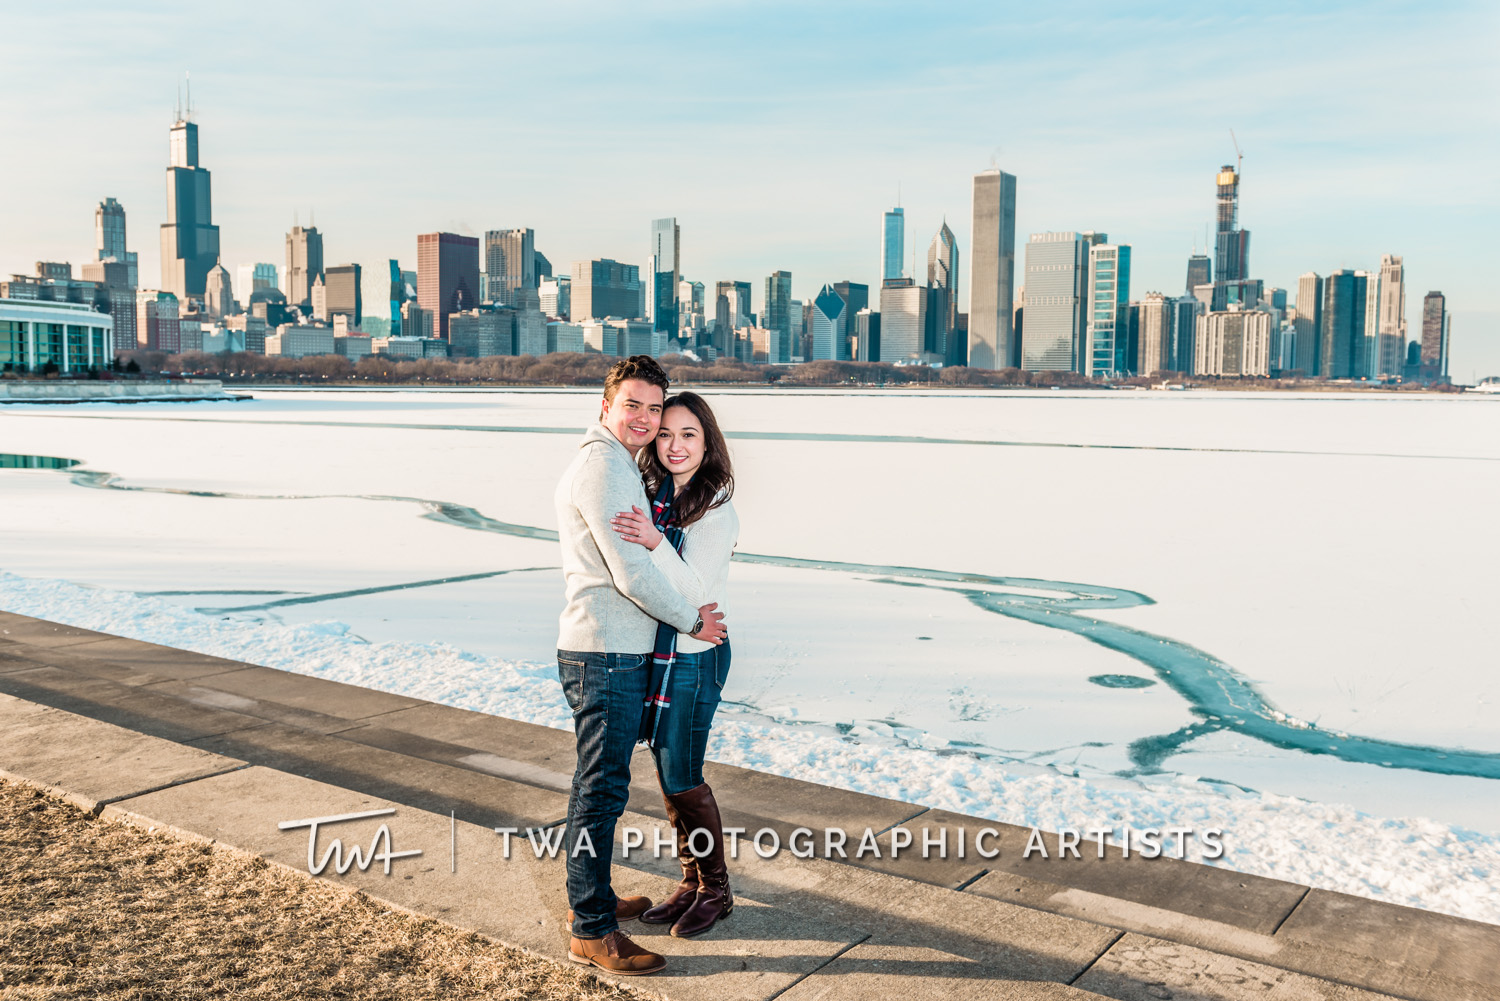 Alissa & Tyler's Chicago Winter Engagement Session